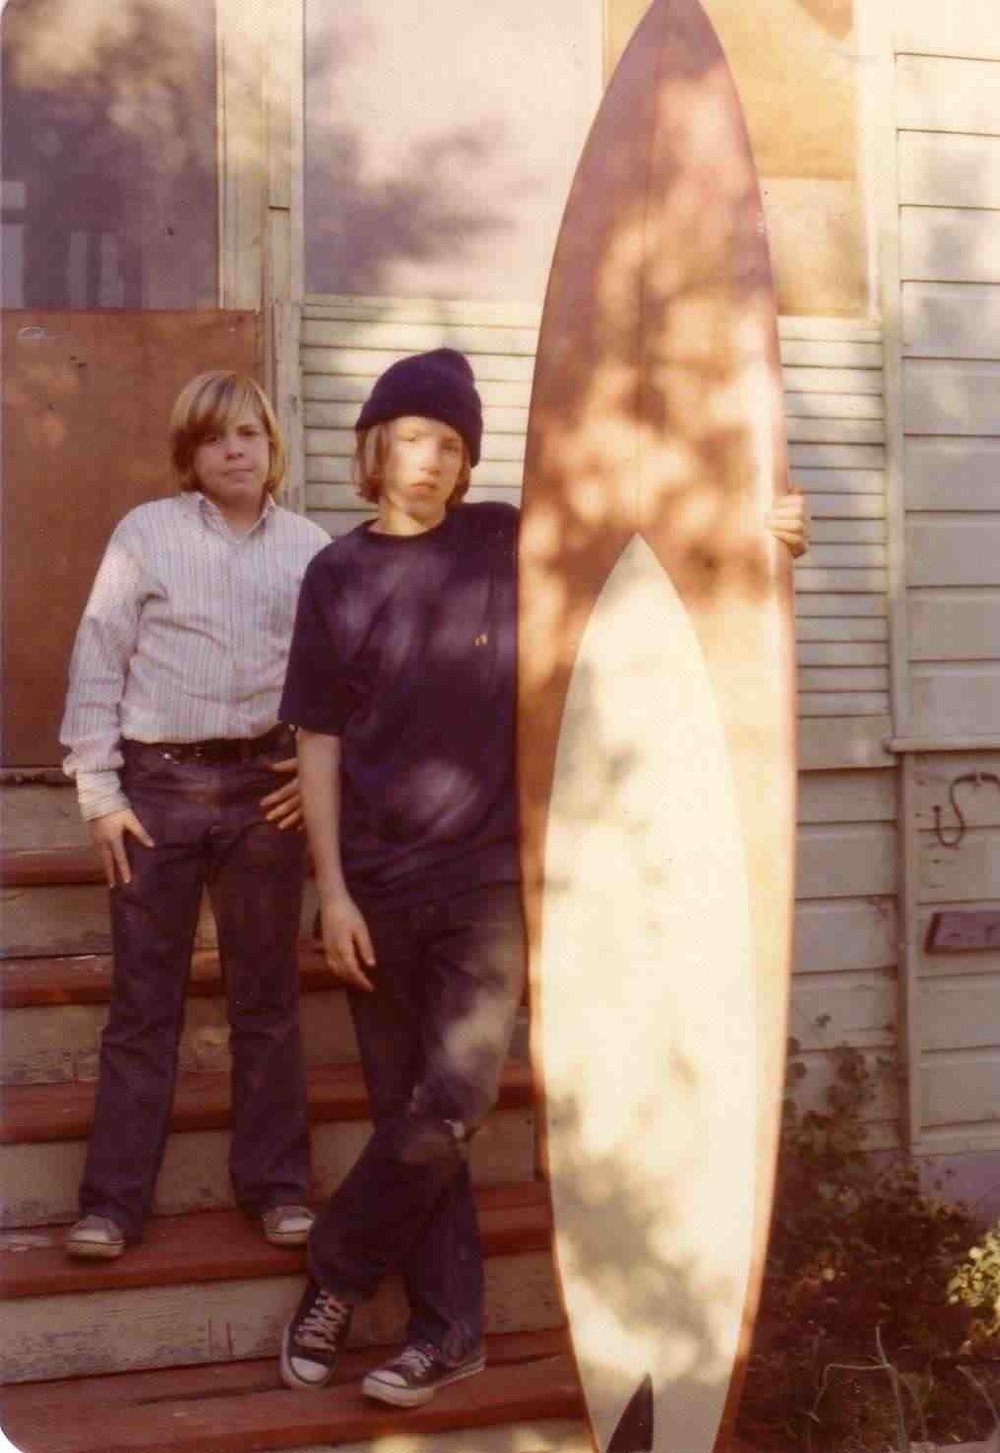 Ben with his first surfboard - a Haut - and his younger brother Michael. Seabright area of Santa Cruz, circa 1972. Photo: Mom.